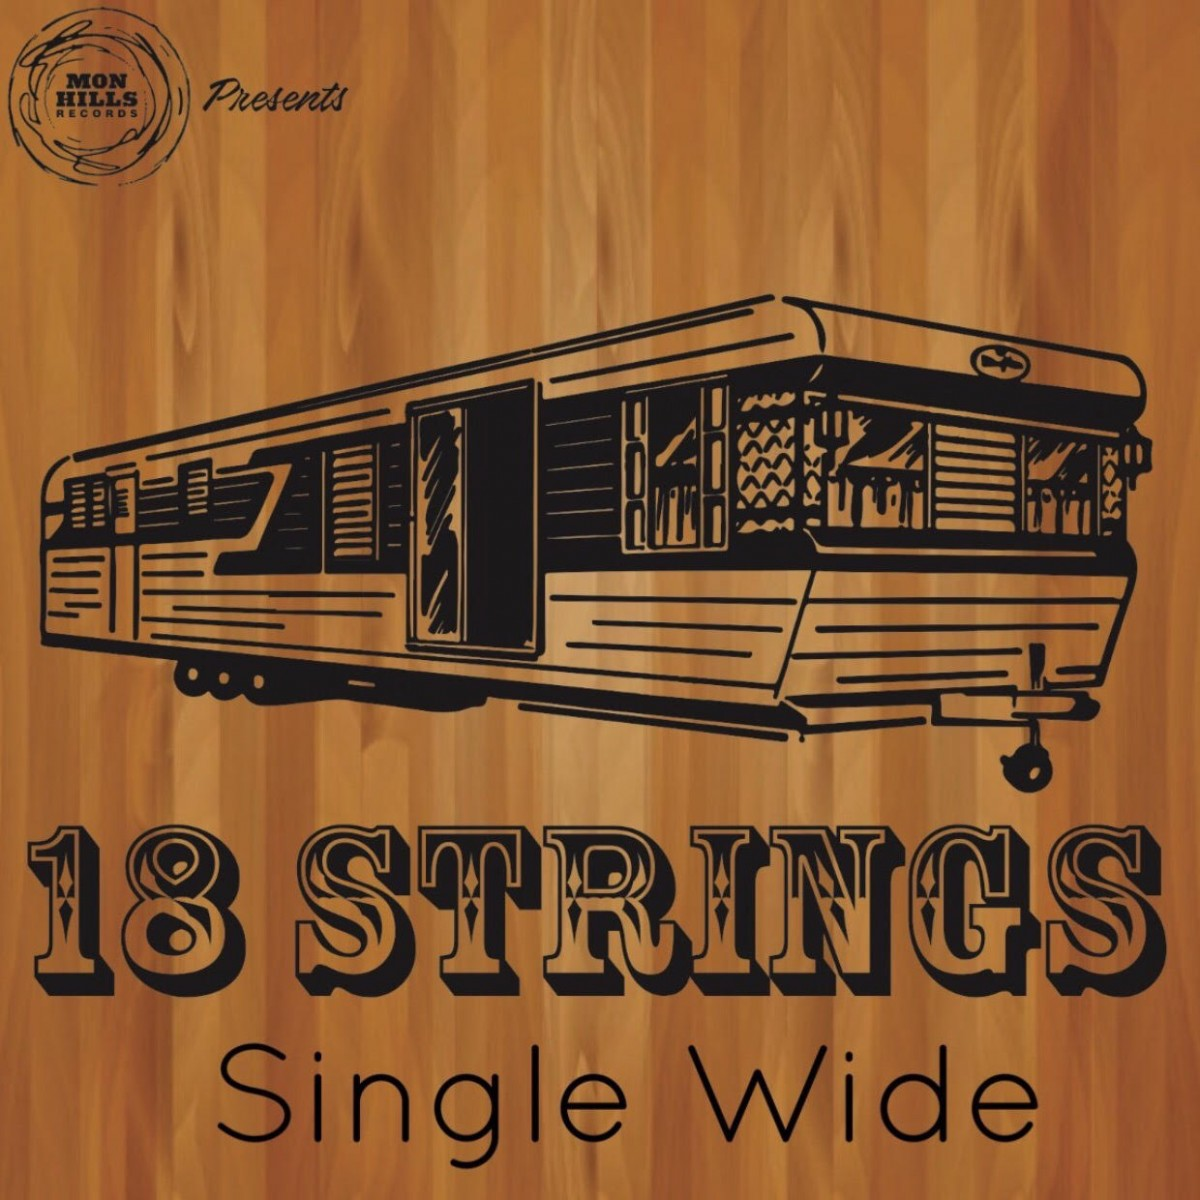 Album Review: 18 Strings, Single Wide